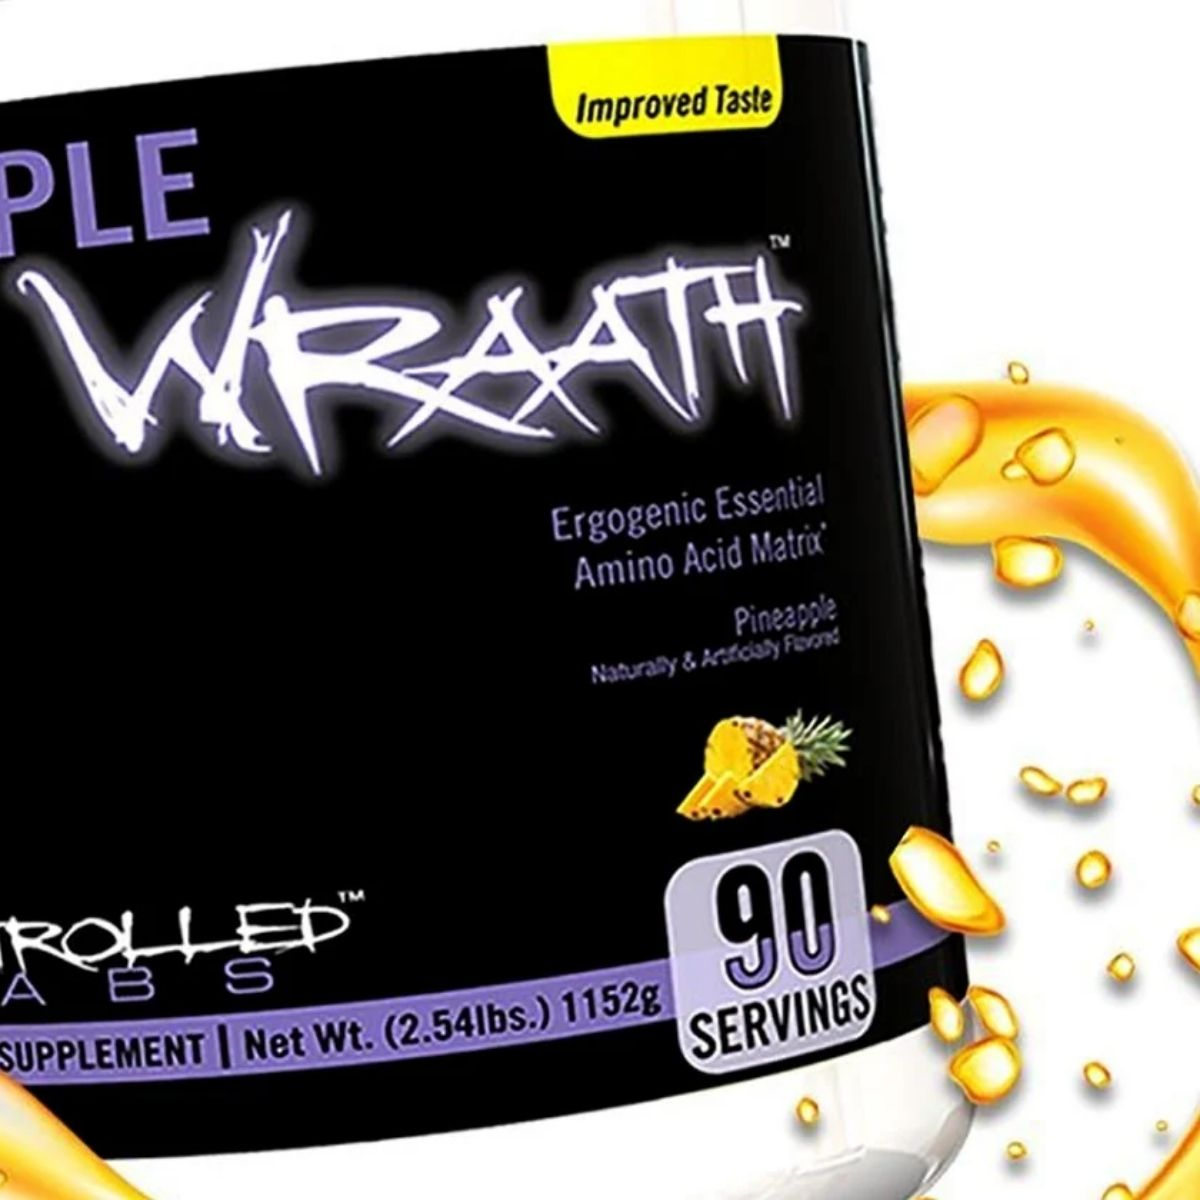 Controlled Labs Purple Wrath Gets a New Pineapple Flavor